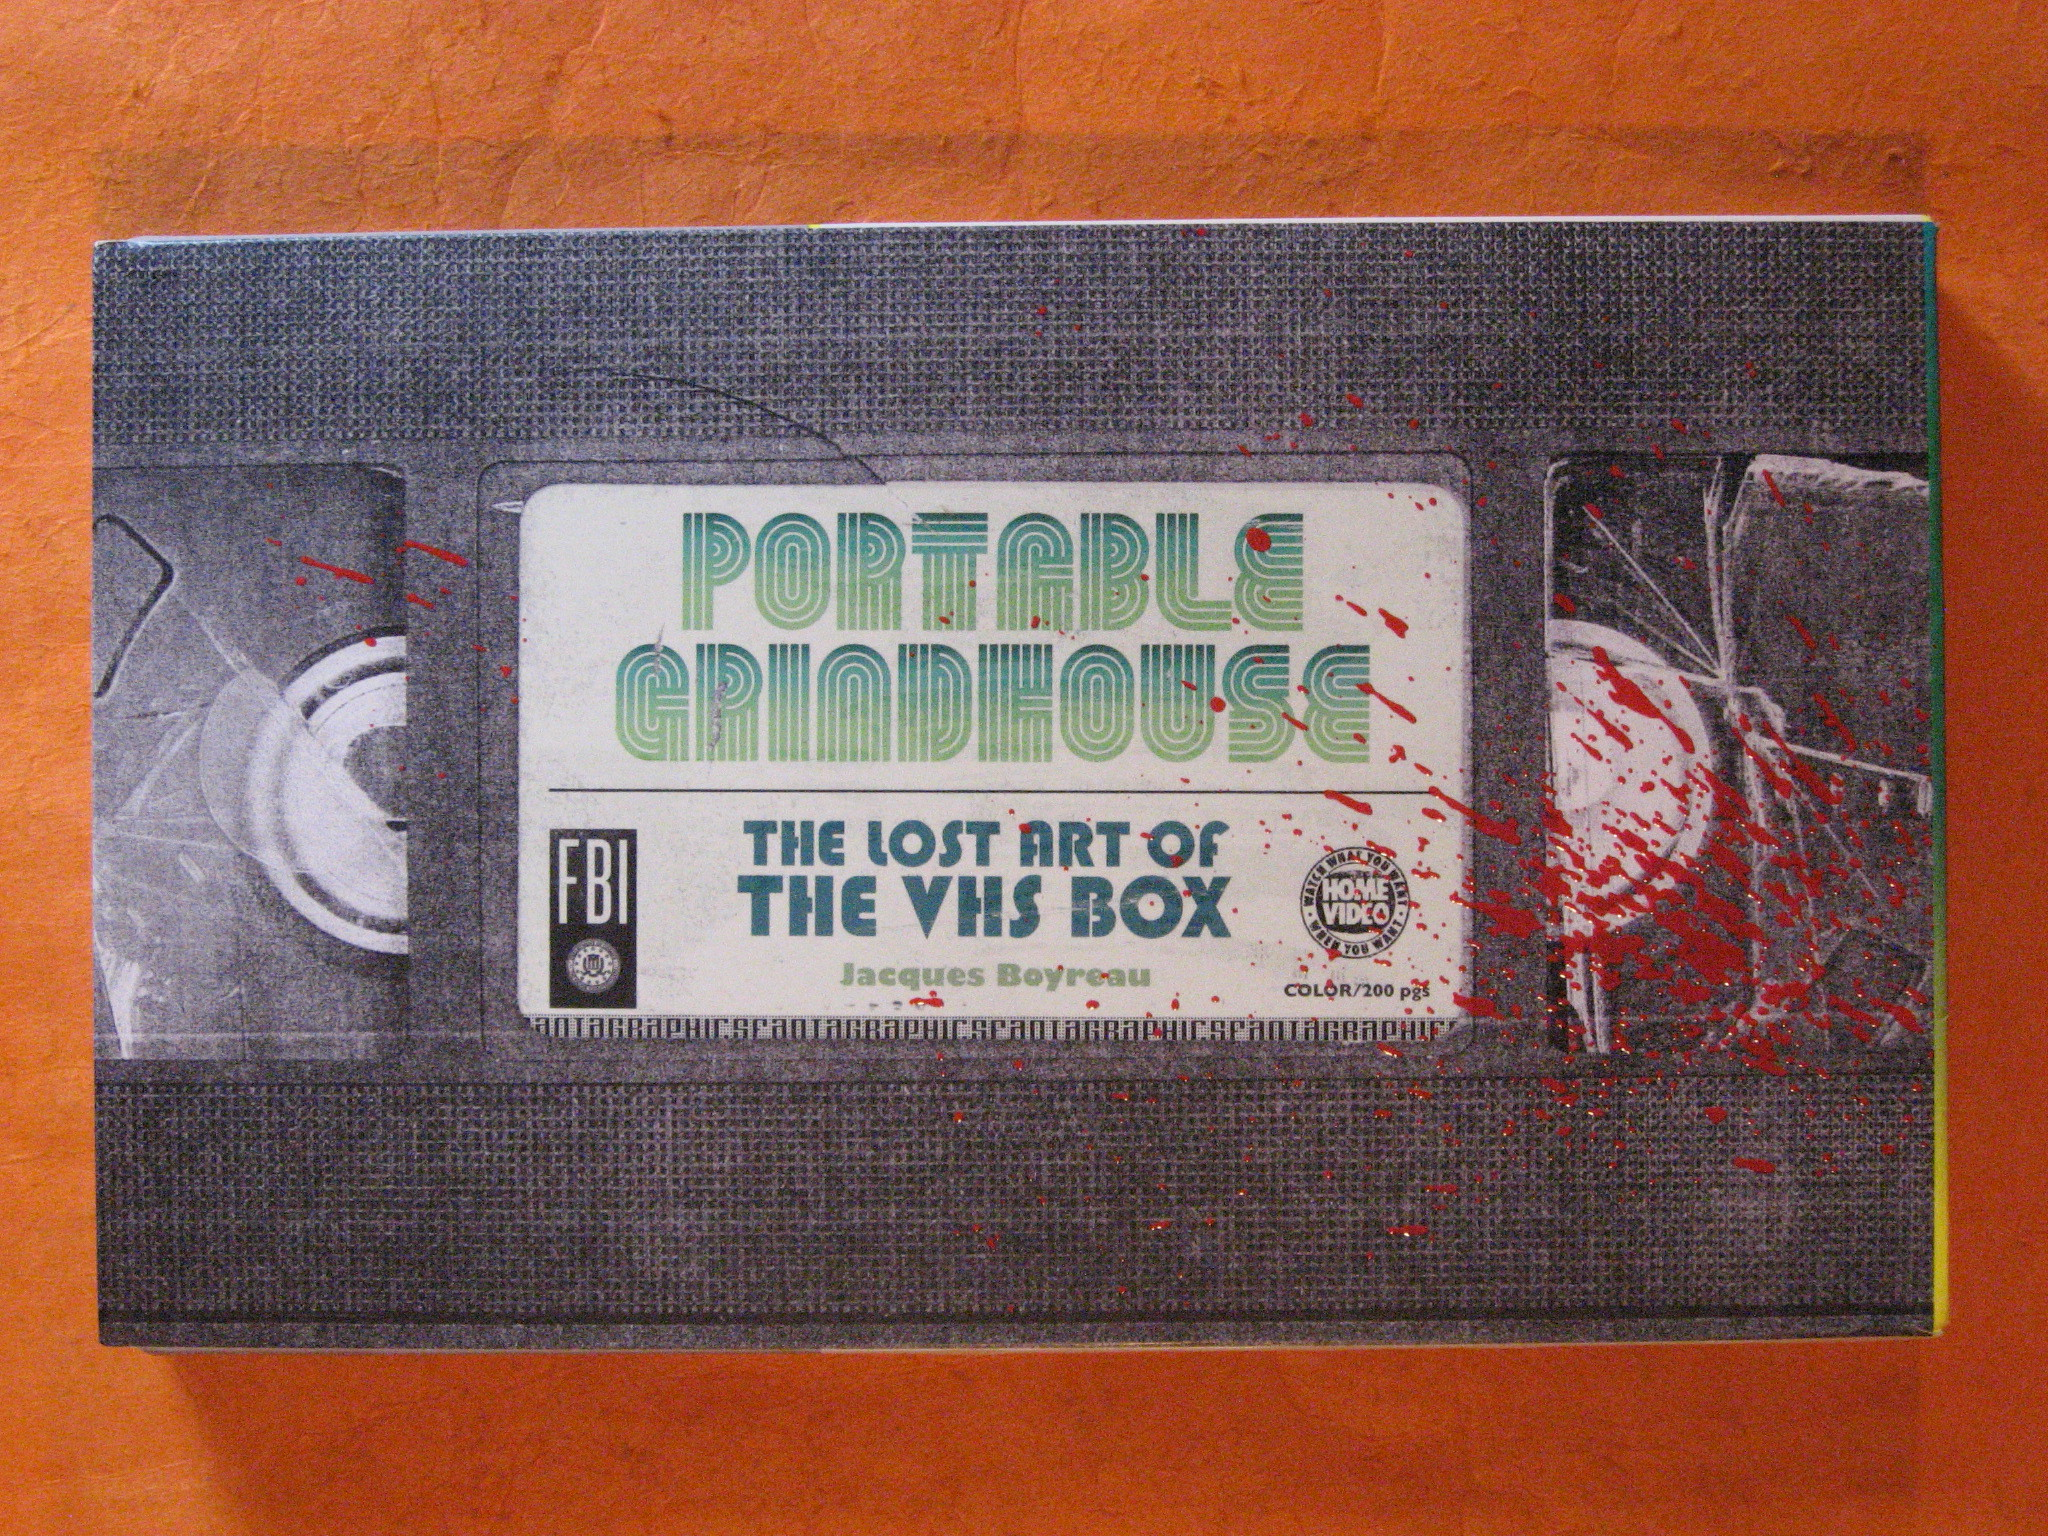 Portable Grindhouse: The Lost Art of the VHS Box,, Boyreau, Jacques